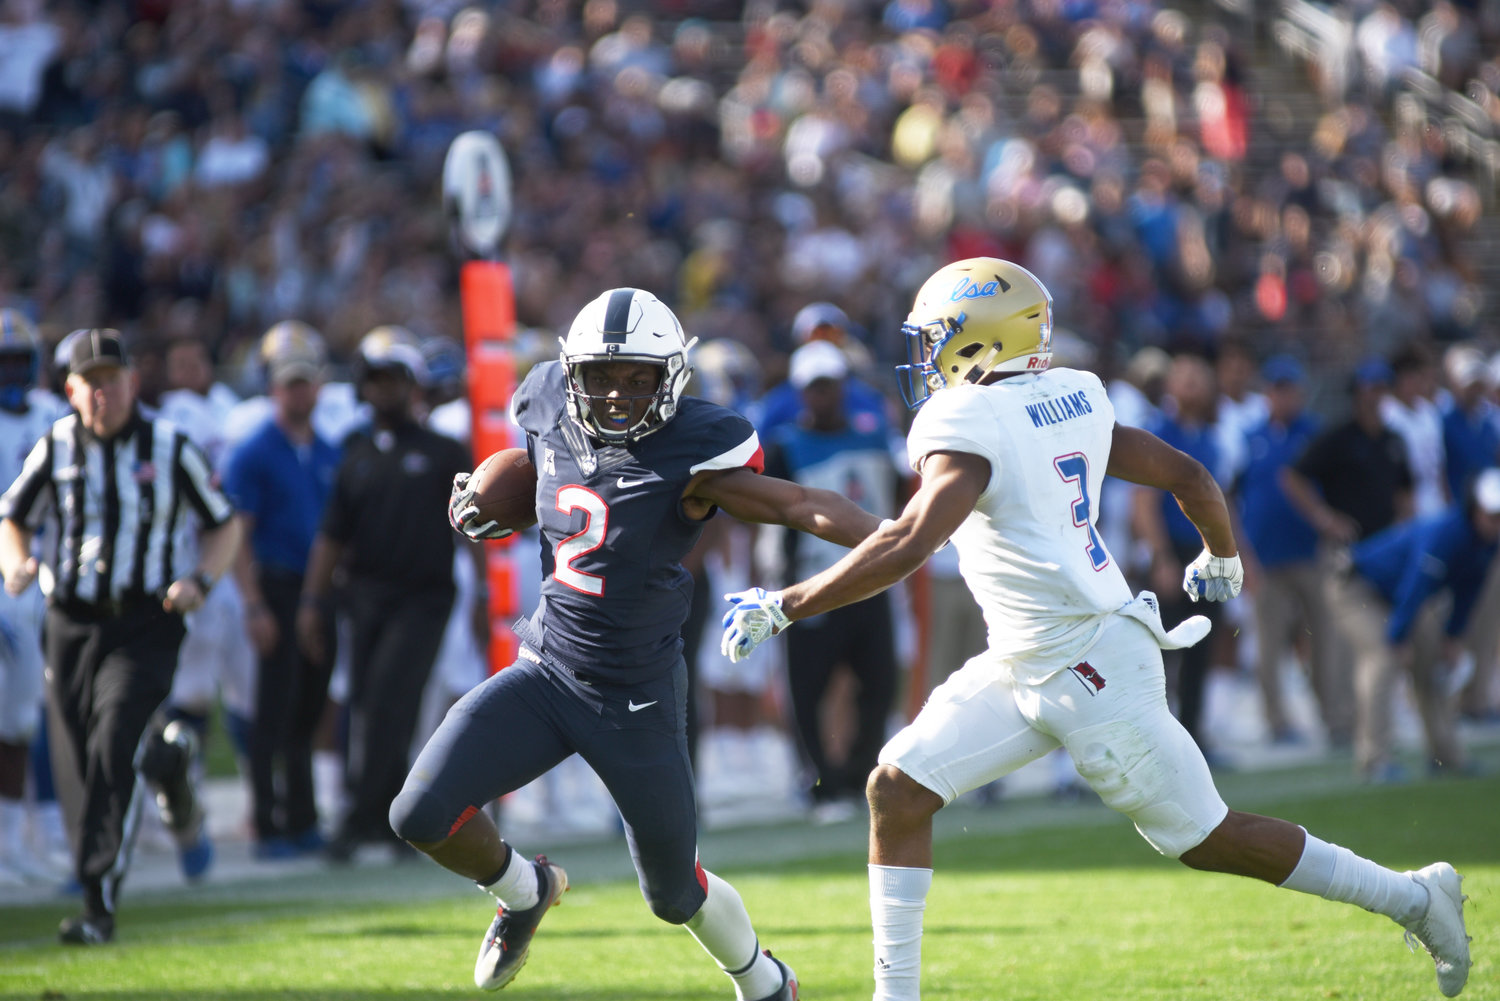 UConn wide receiver Tyraiq Beals stiff arms a Tulsa defender during the Huskies' 20-14 over Tulsa Saturday at Rentschler Field in East Hartford. (Charlotte Lao, Associate Photo Editor/The Daily Campus)